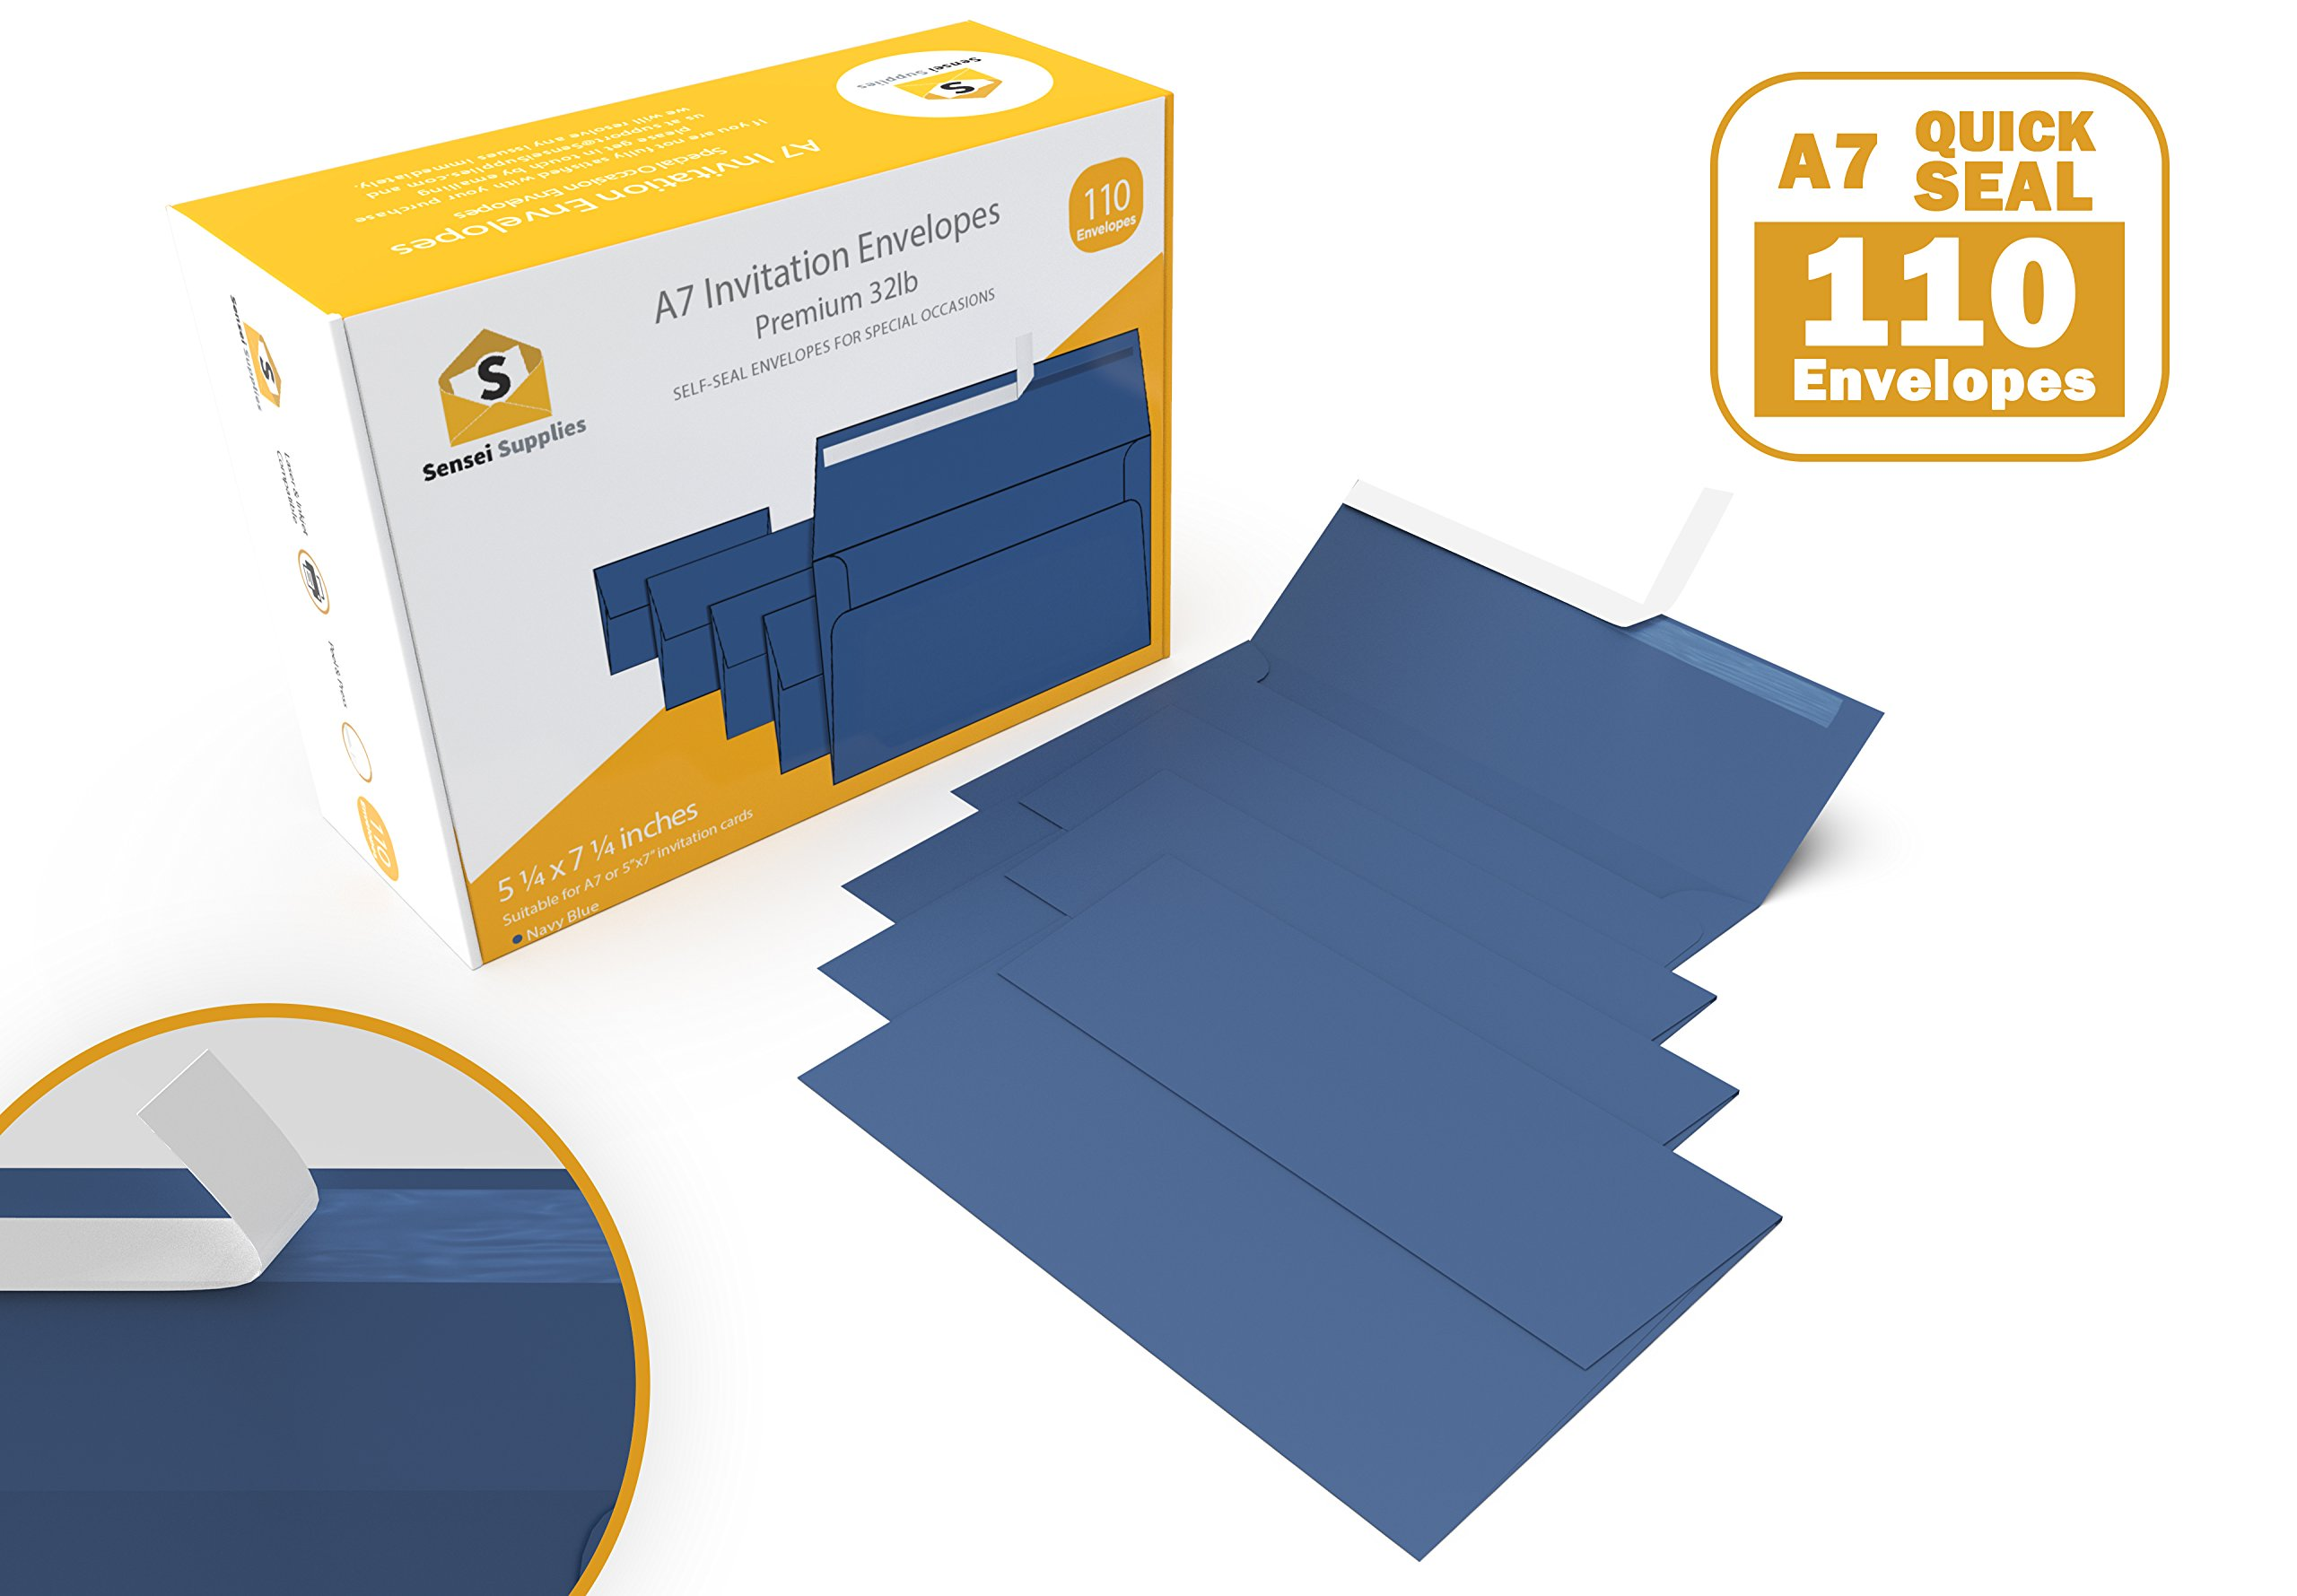 Best rated in greeting card mailing envelopes helpful customer navy blue 5 x 7 invitation envelopes for 5x7 cards a7 5 x 7 inches perfect for weddings graduation any cards 120 gsm 32lb80lb text m4hsunfo